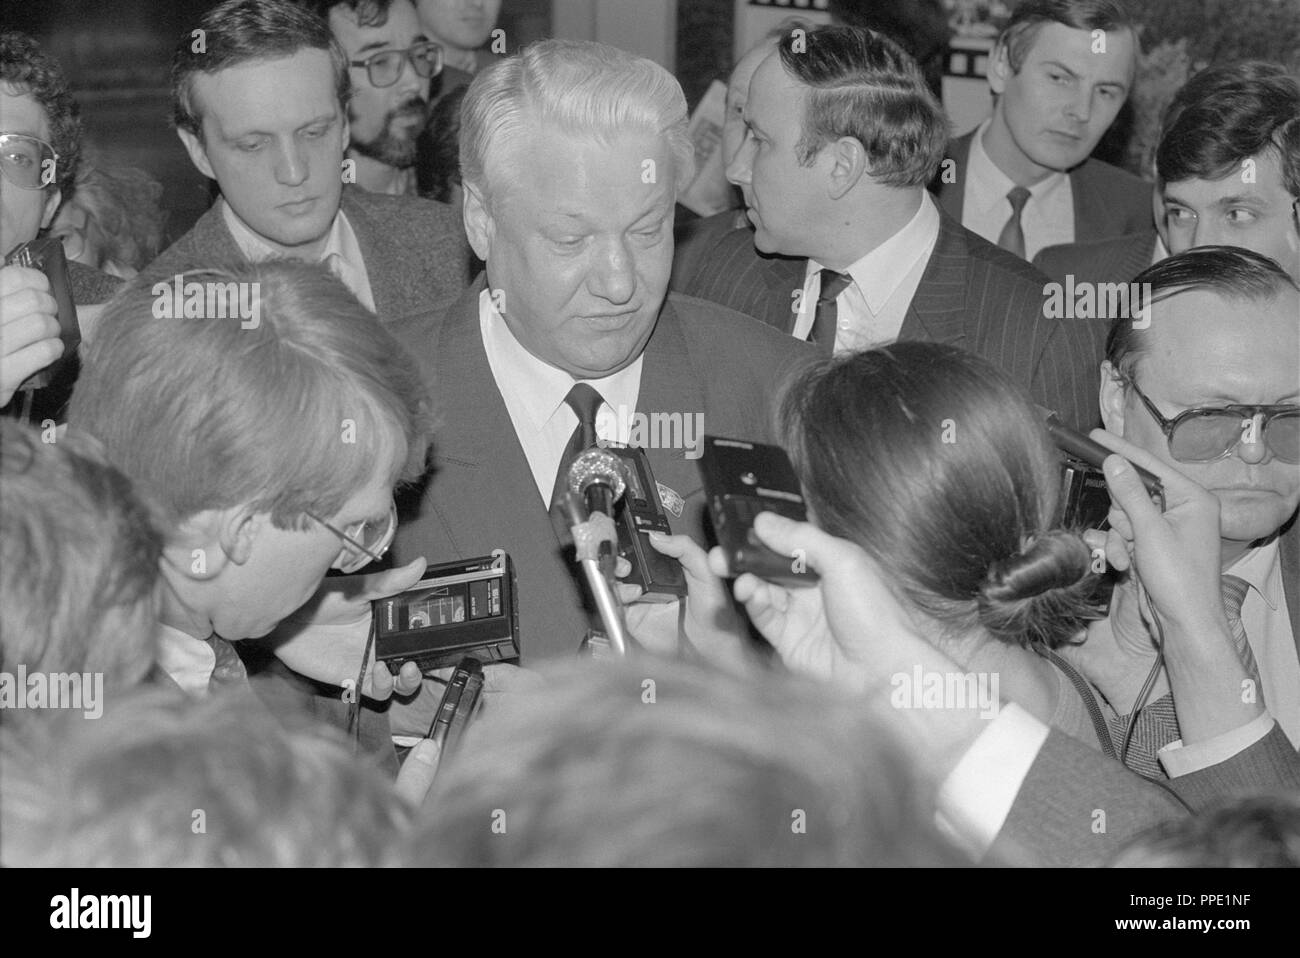 Moscow, Russia - March 28, 1991: Chairman of the Presidium of the Supreme Soviet of the Russian SFSR Boris Nikolayevich Yeltsin talks to correspondents at 3d extraordinary Congress of people's deputies of russian RSFSR. - Stock Image